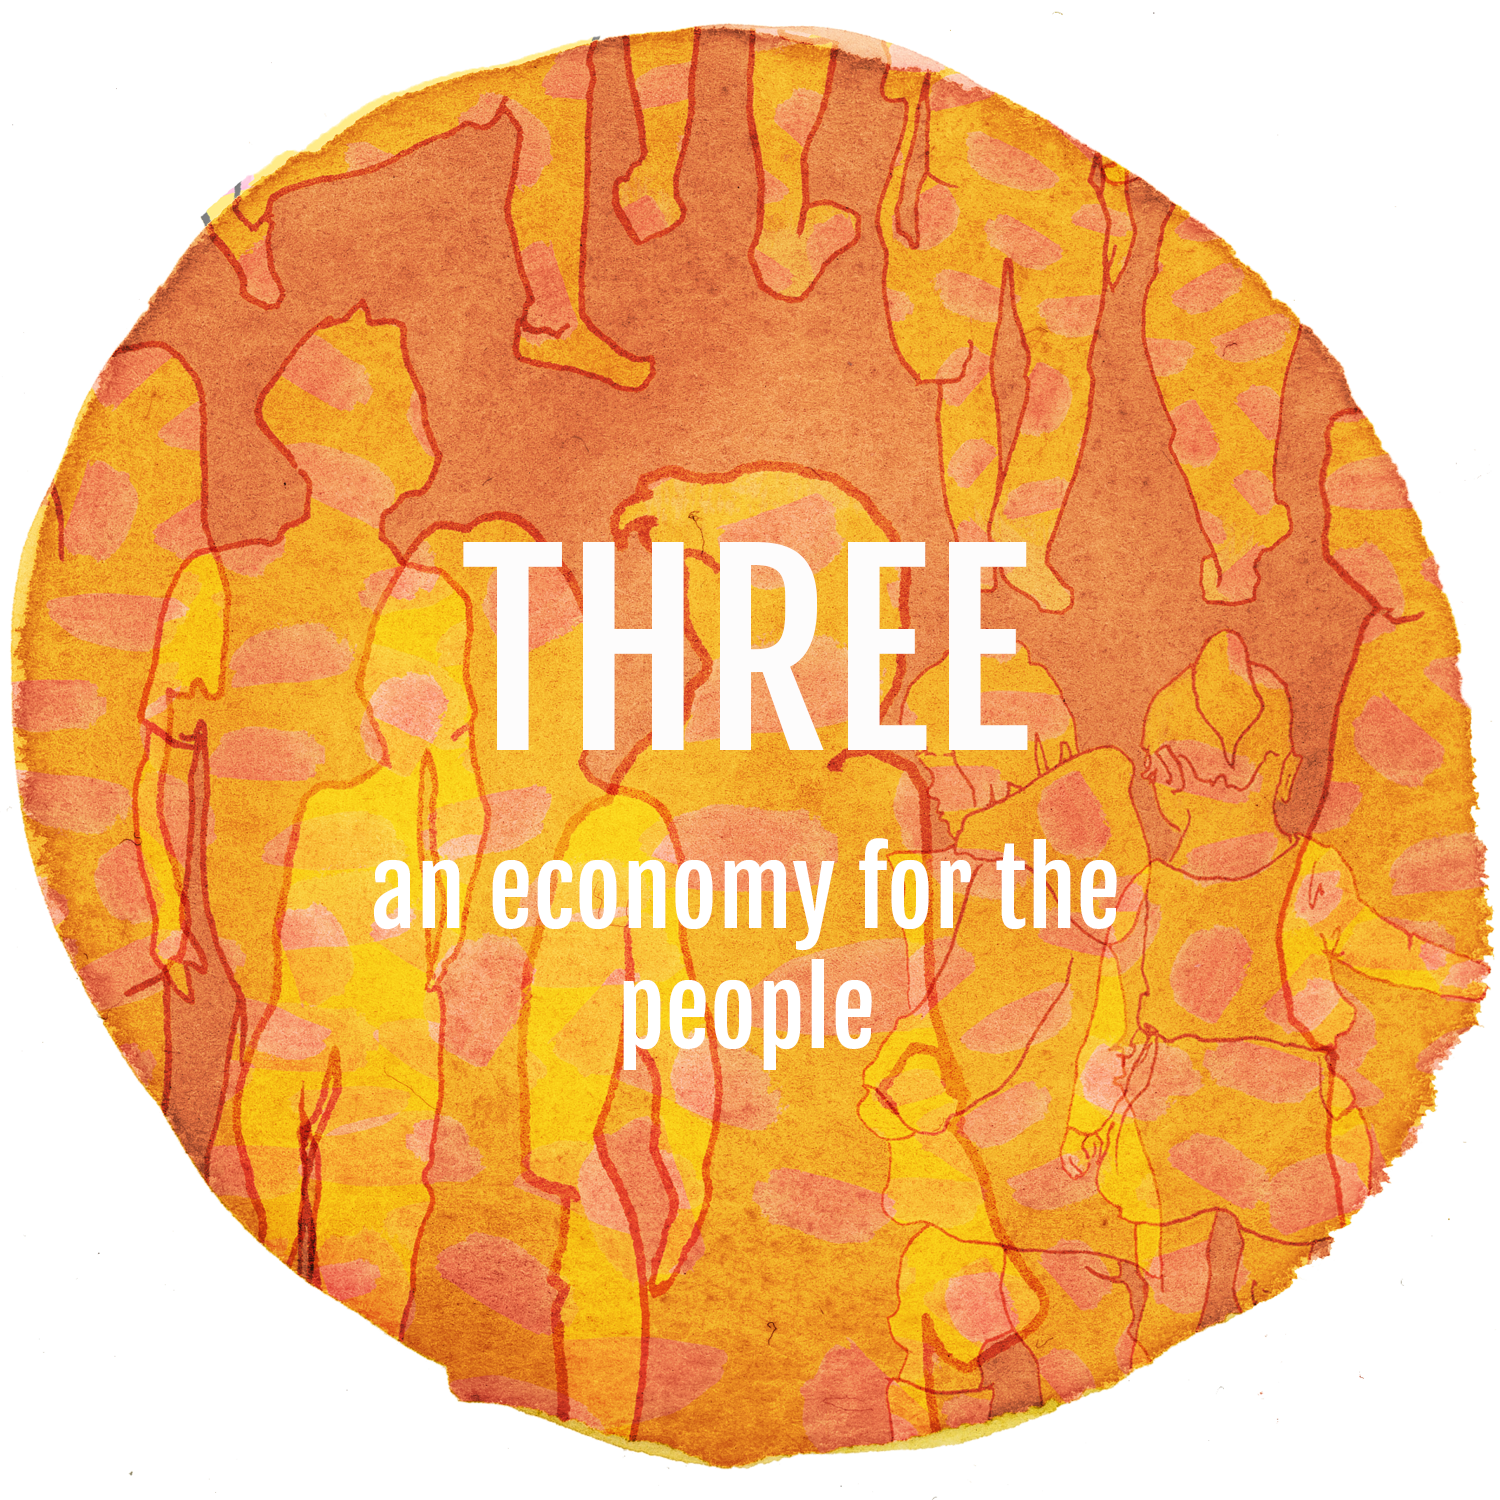 - Australia's economy serves our people and the planet. Our government makes decisions that put people first: decisions that are good for nature, lift people out of poverty and fairly share our country's wealth.Click on the image to read more...